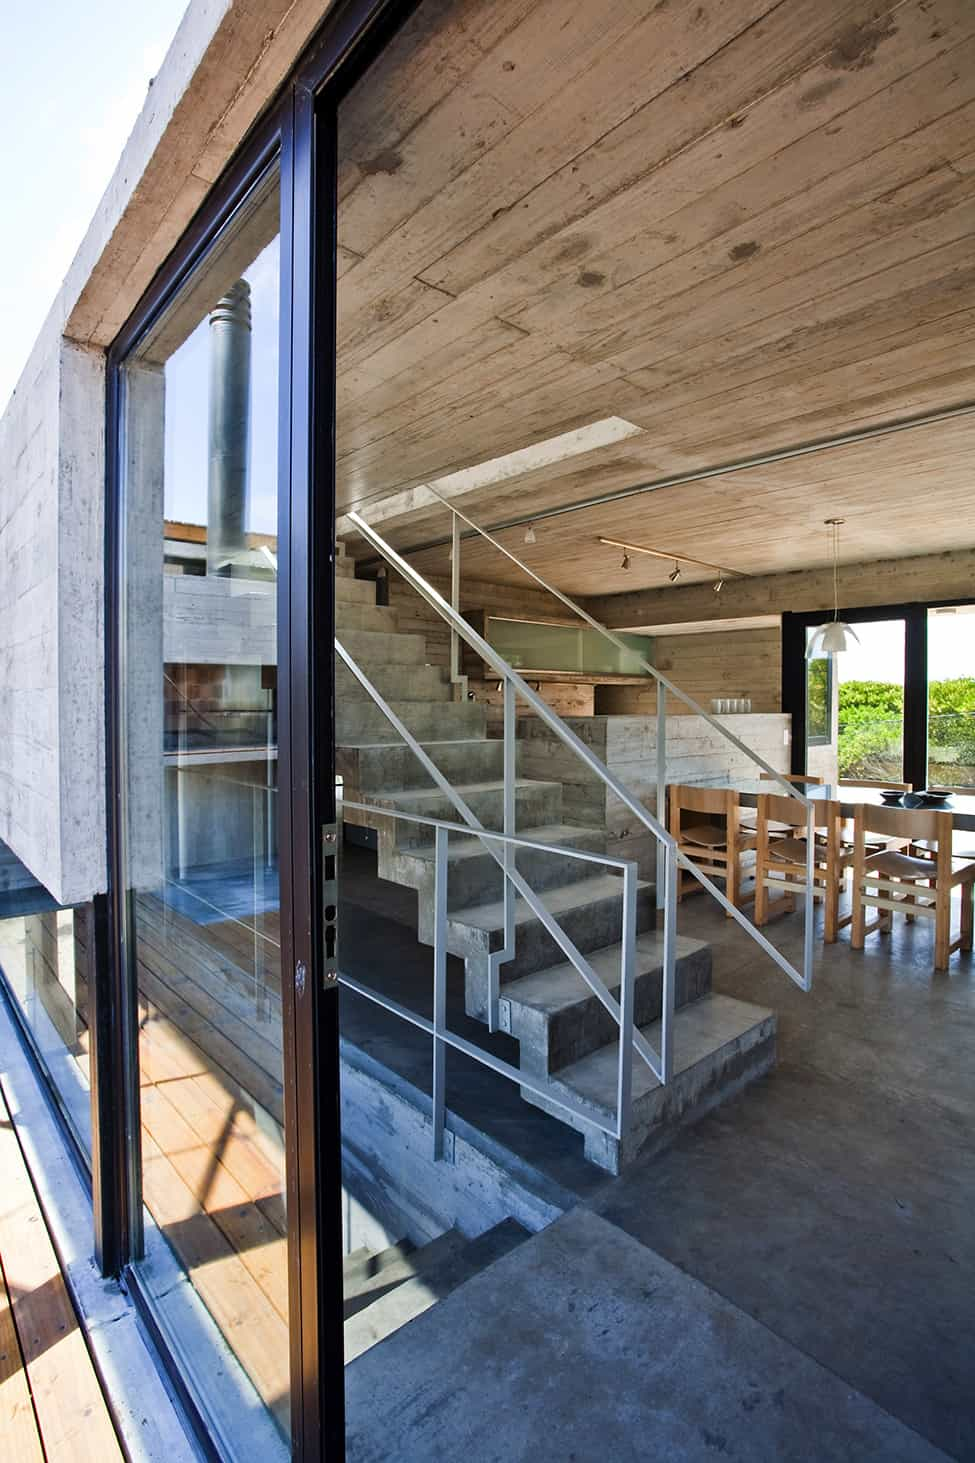 Industrial Aesthetic Values in a Beach Home by BAK Architects (12)